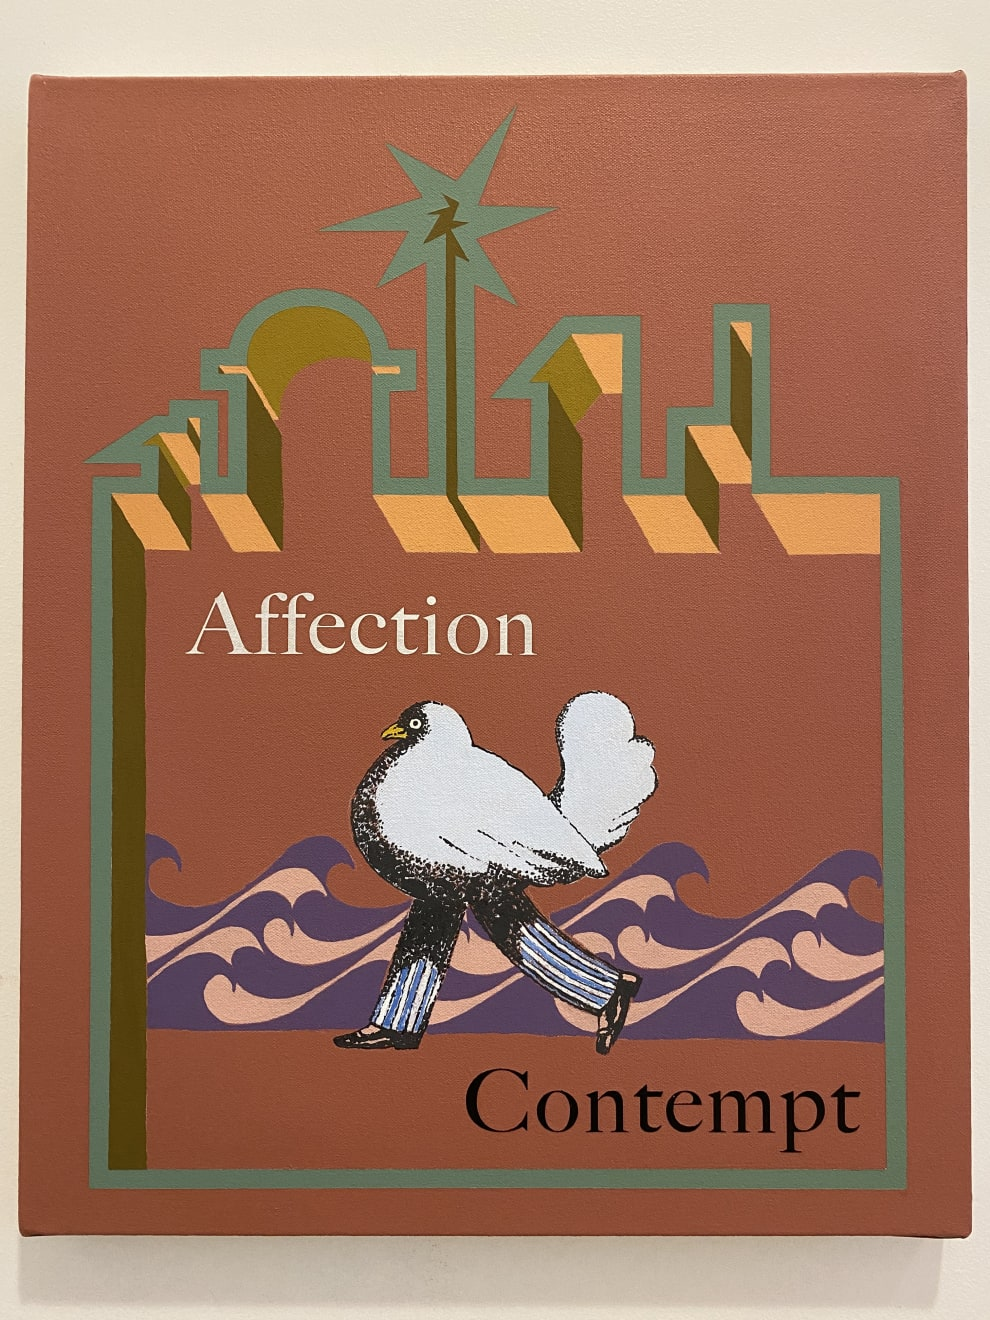 Alan Reid, Affection and Contempt, 2020 Acrylic on Canvas, 20 x 15 in